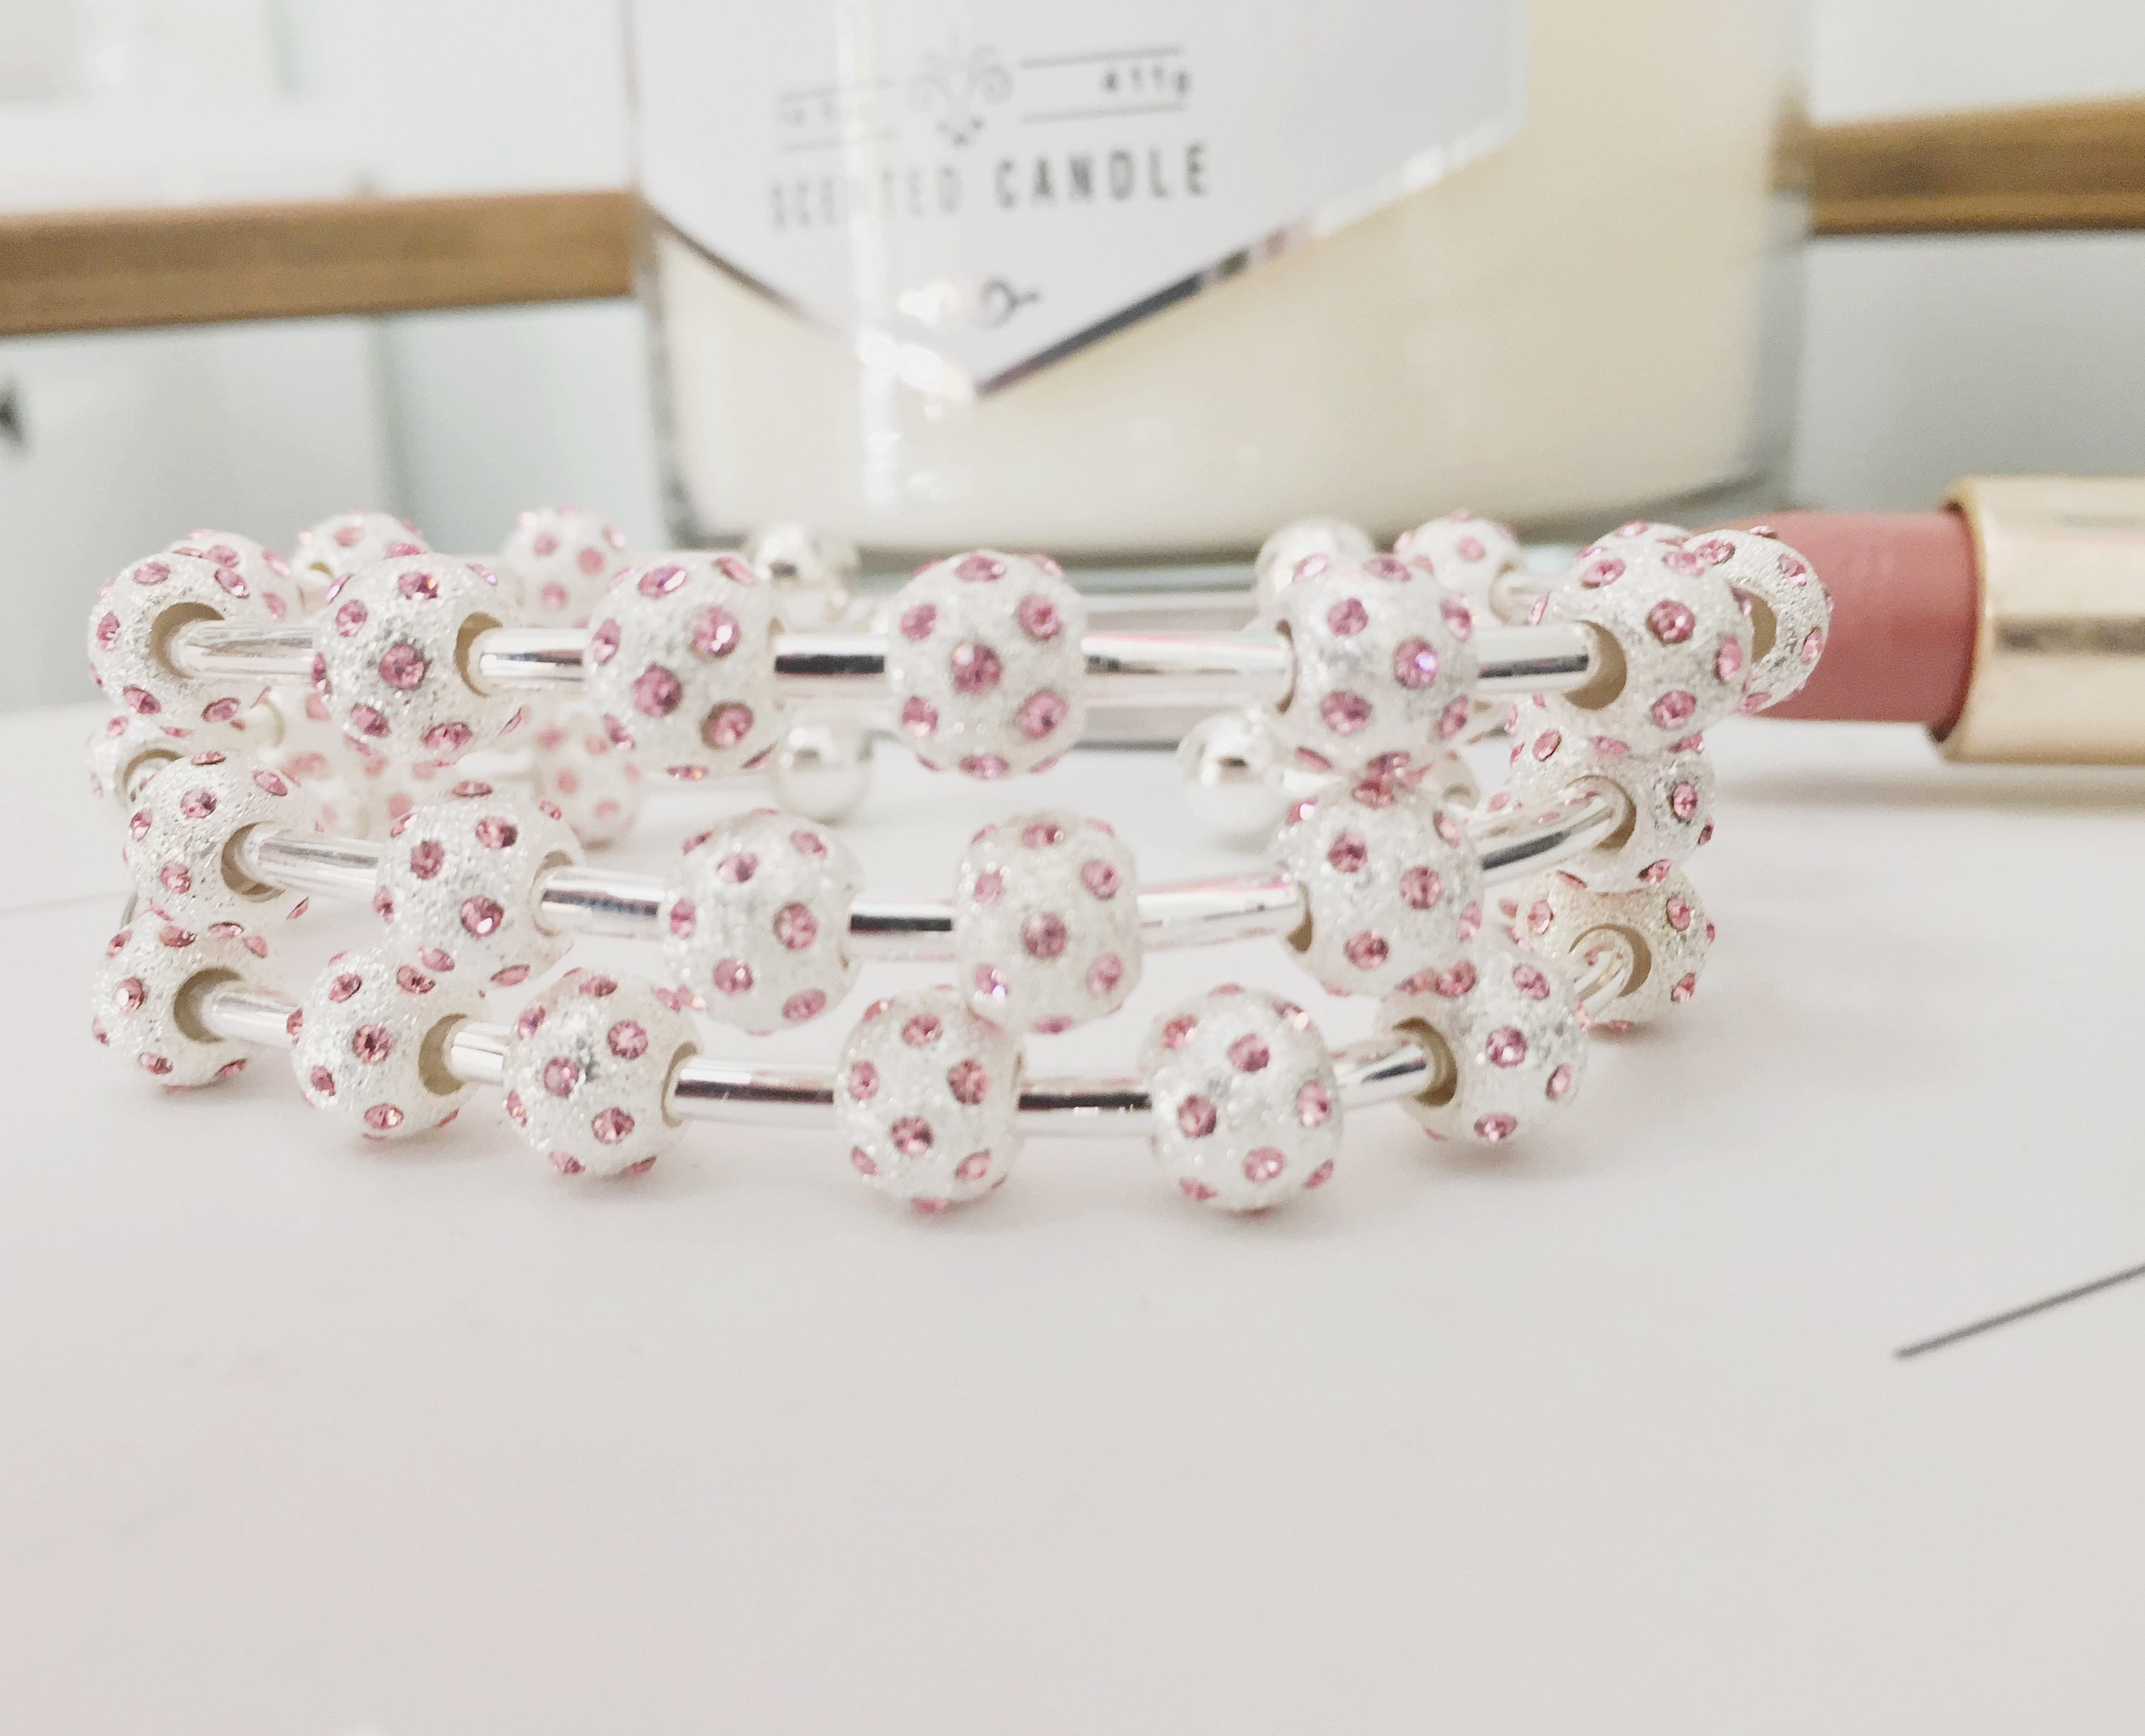 Introducing New Watercolor Crystal Journal Bracelets